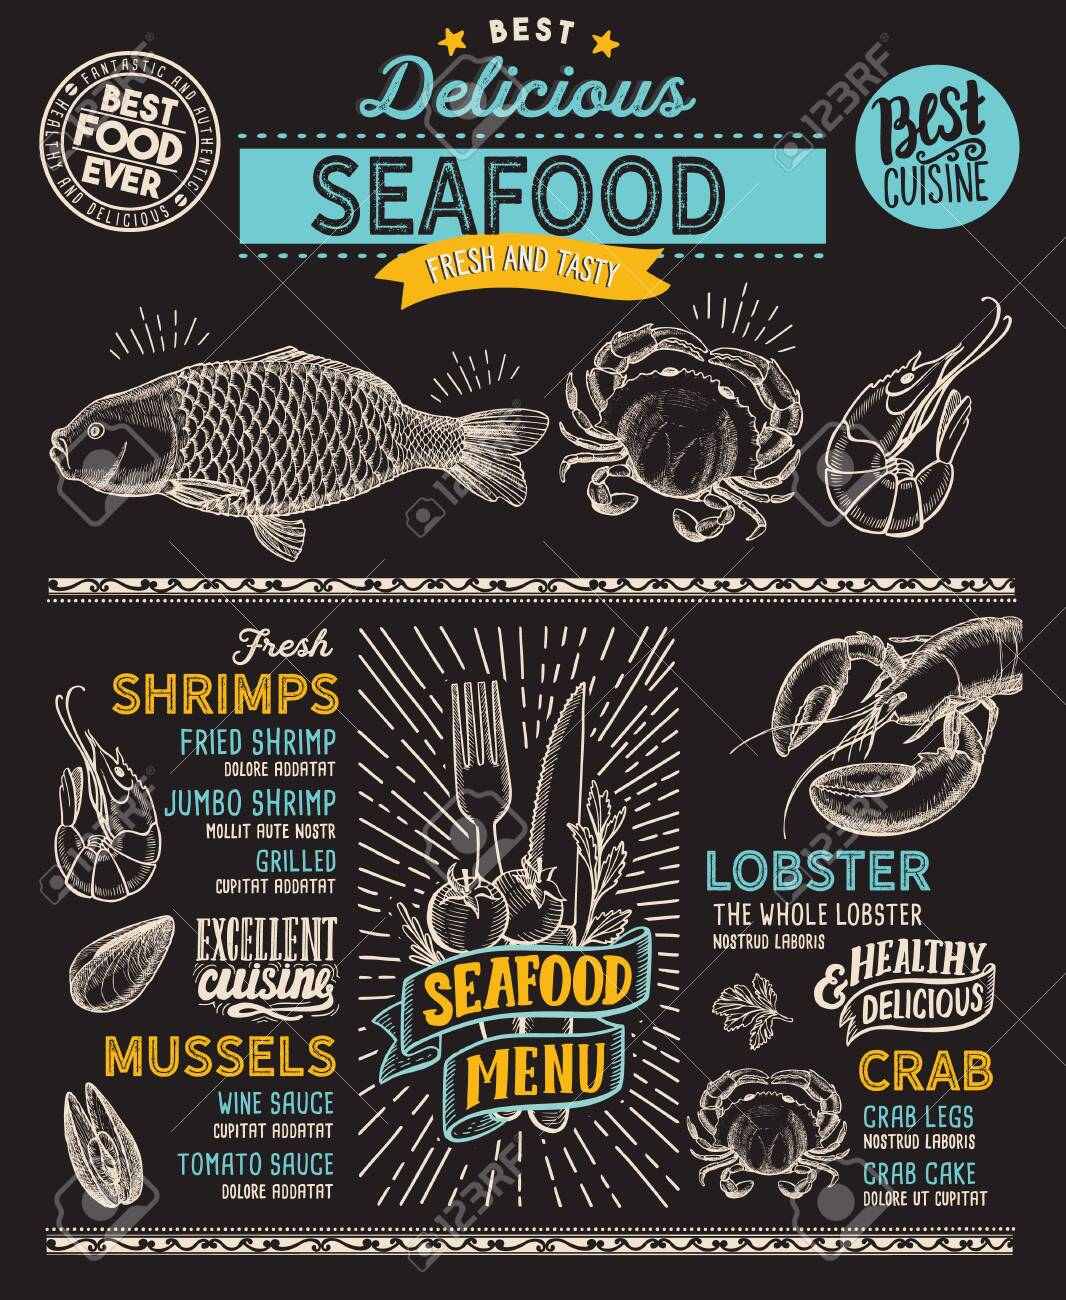 Seafood Menu Template For Restaurant On A Blackboard Background Royalty Free Cliparts Vectors And Stock Illustration Image 130815899